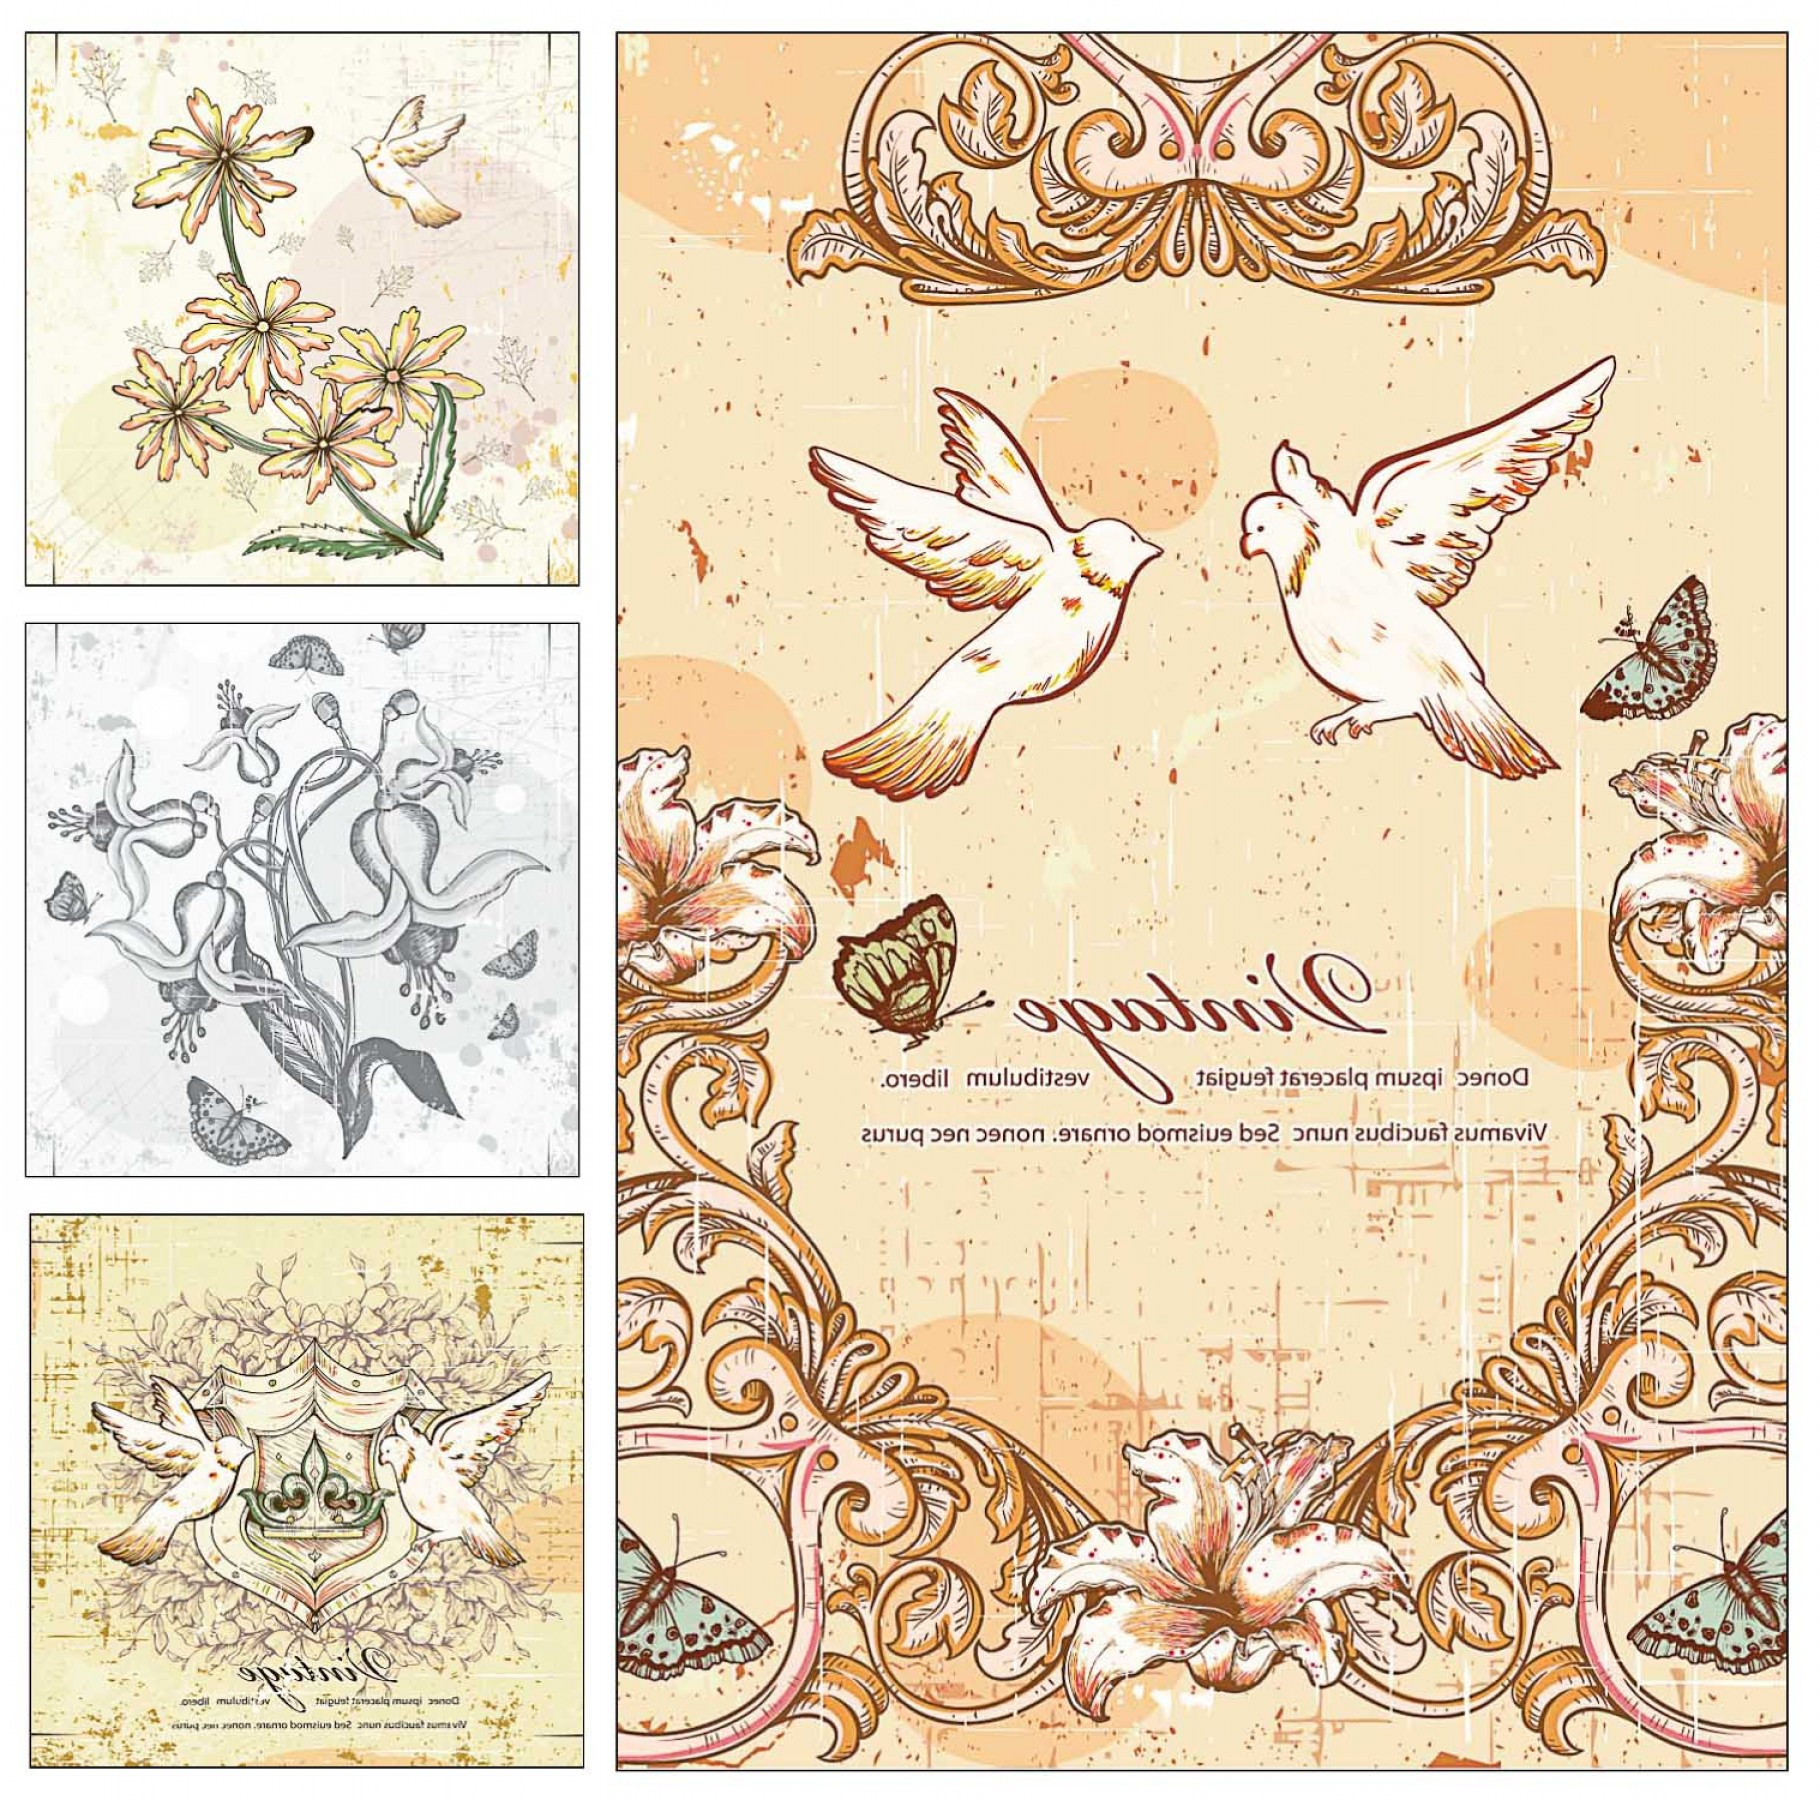 Rustic Wedding Invitation Vector: Doves And Flowers Wedding Invitation Card Vector